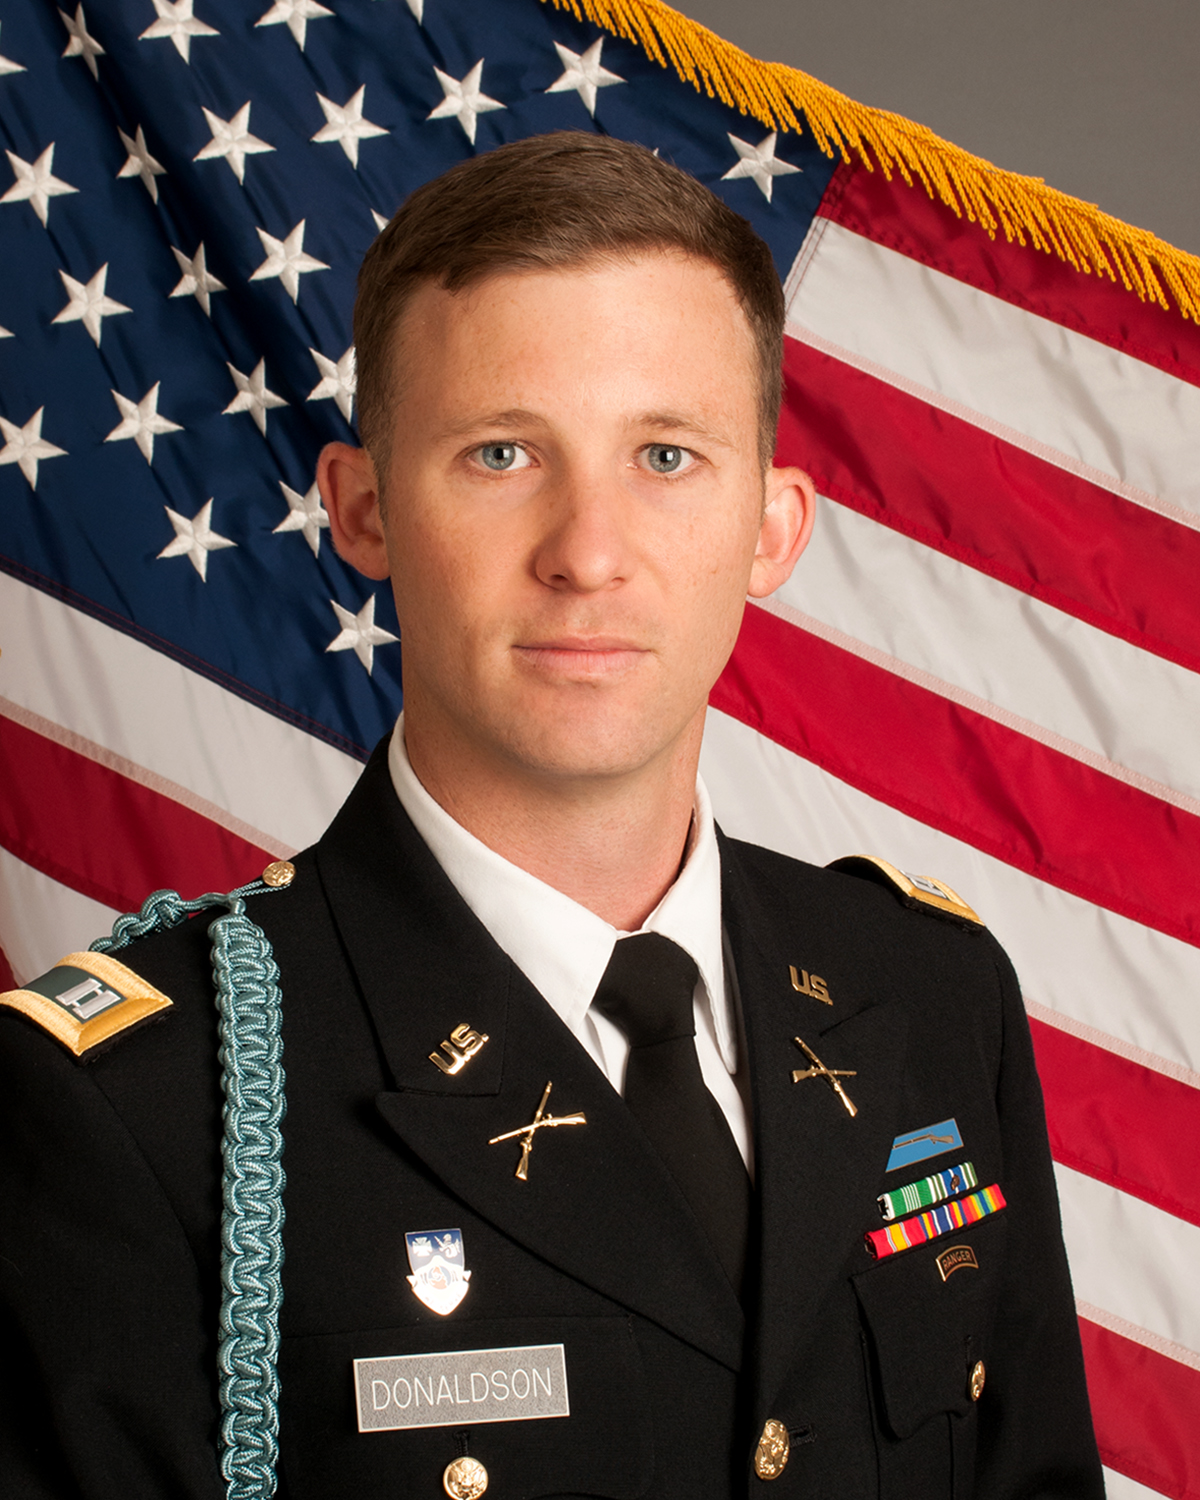 CPT Ryan Donaldson, Military Science portraits, Photo by Emma Thompson